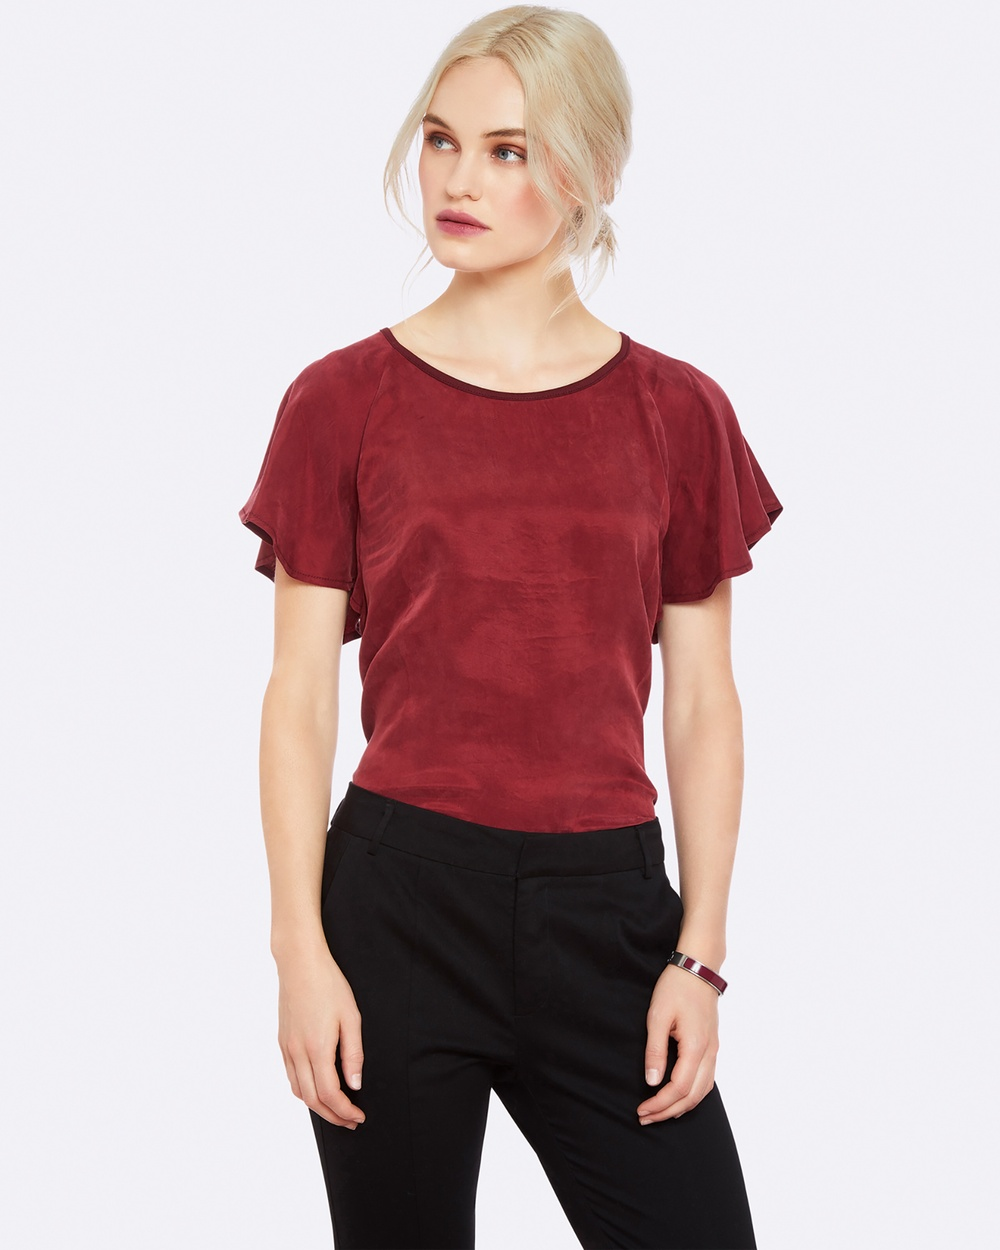 Oxford ROSIE RUFFLE T SHIRT RED Tops Red ROSIE RUFFLE T-SHIRT RED